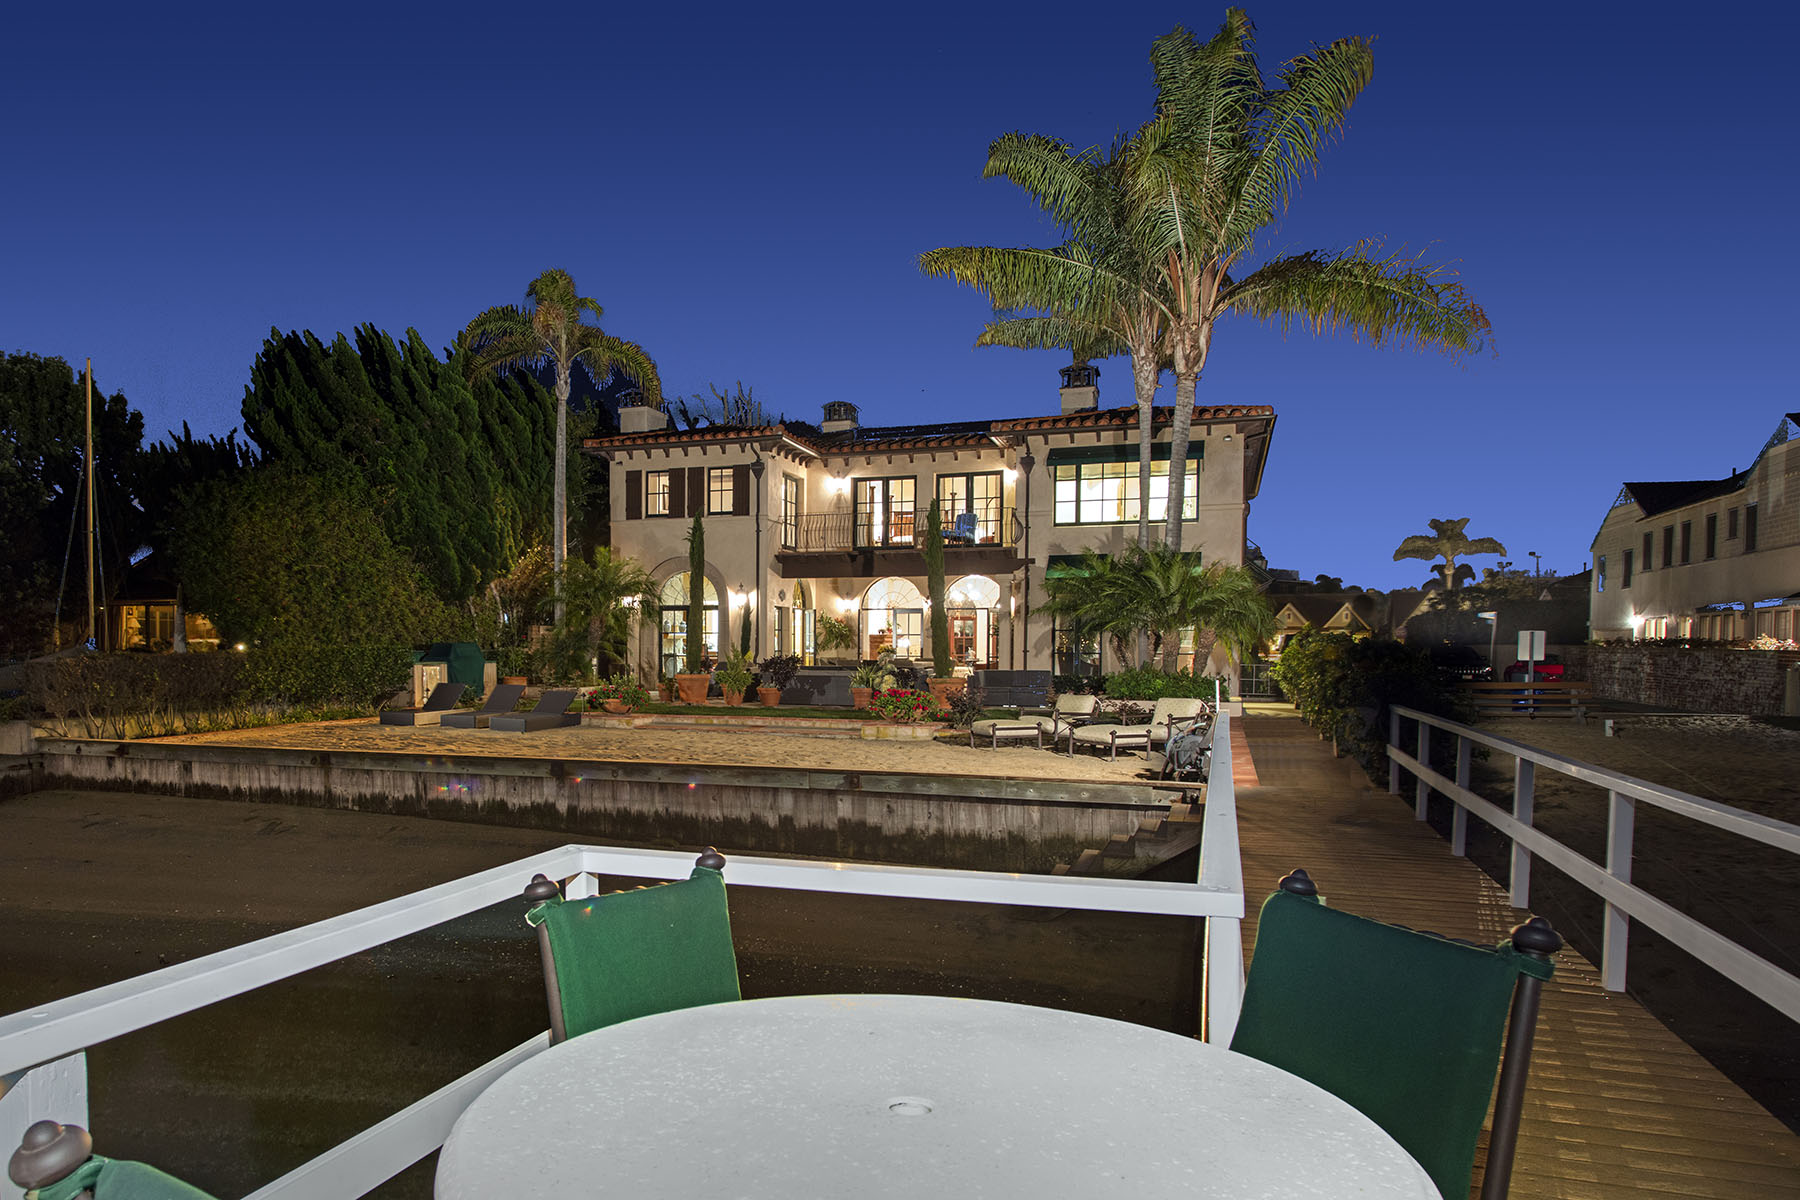 Single Family Home for Sale at 1601 E. Bay Ave Newport Beach, California, 92661 United States